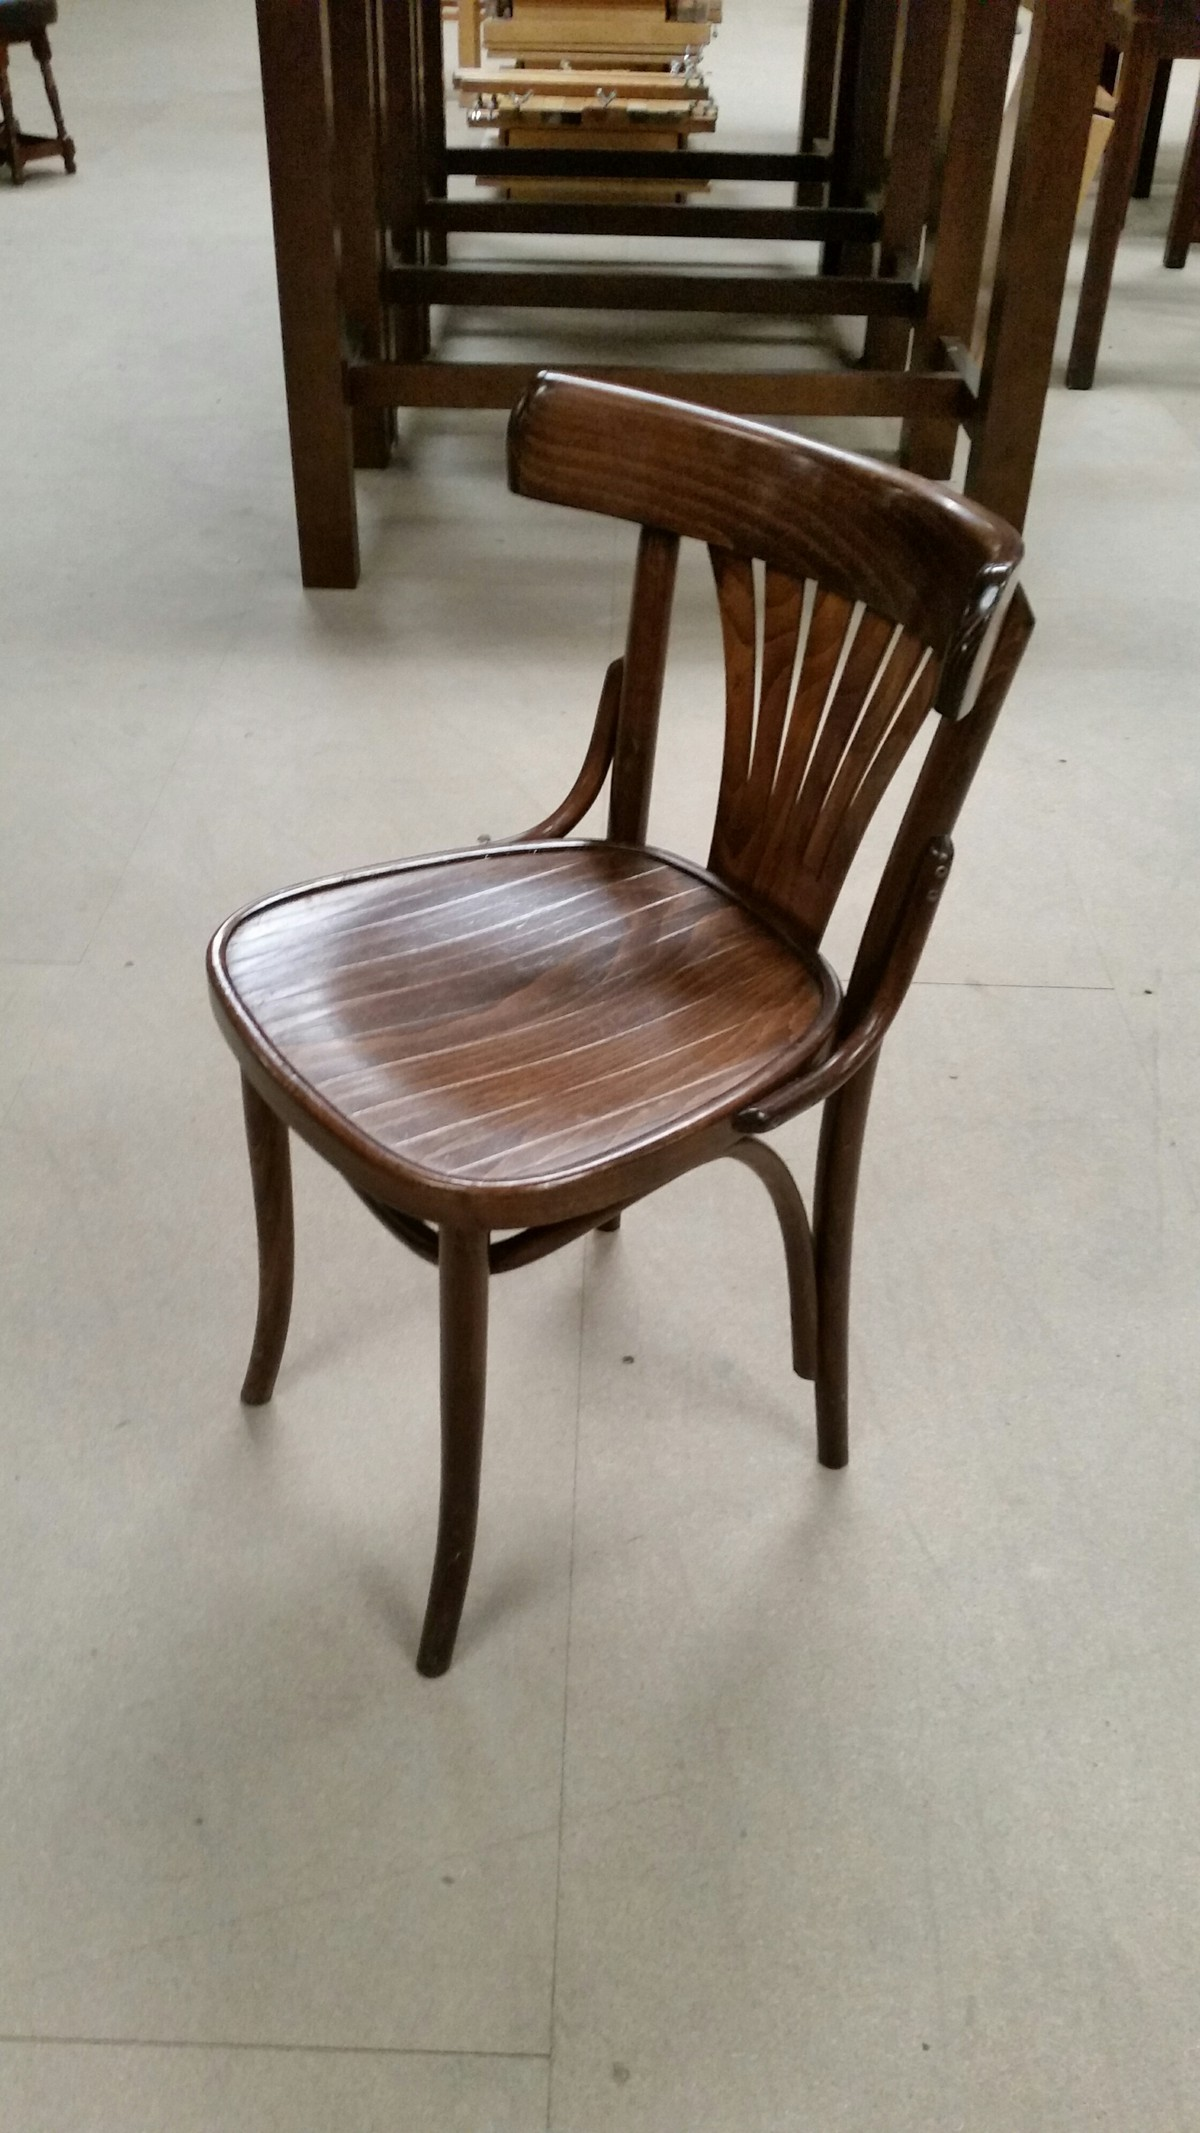 Secondhand Chairs And Tables Pub And Bar Furniture 25x Bentwood